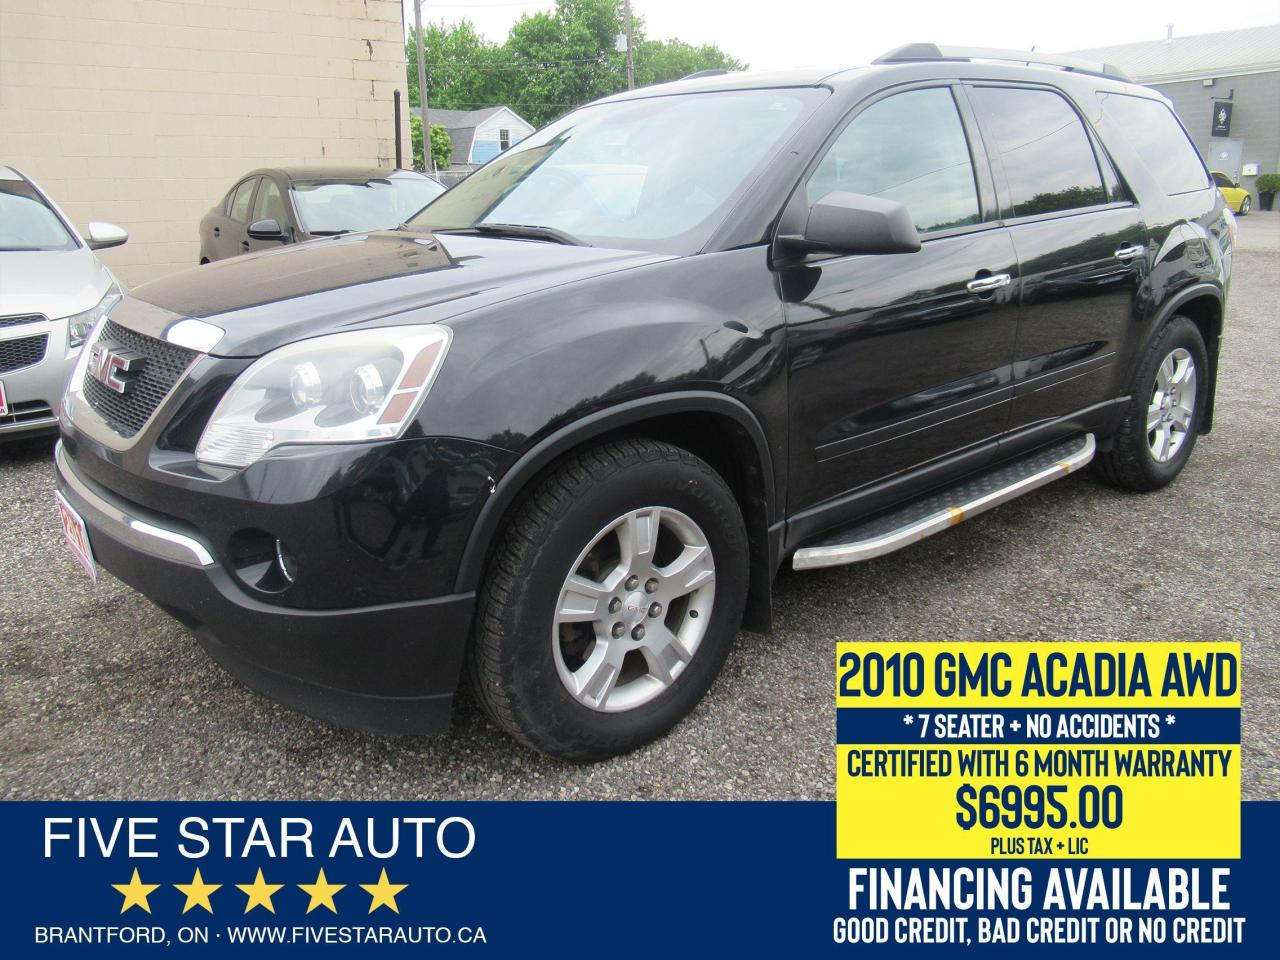 2010 GMC Acadia SLE AWD *No Accidents* Certified + 6 Mnth Warranty